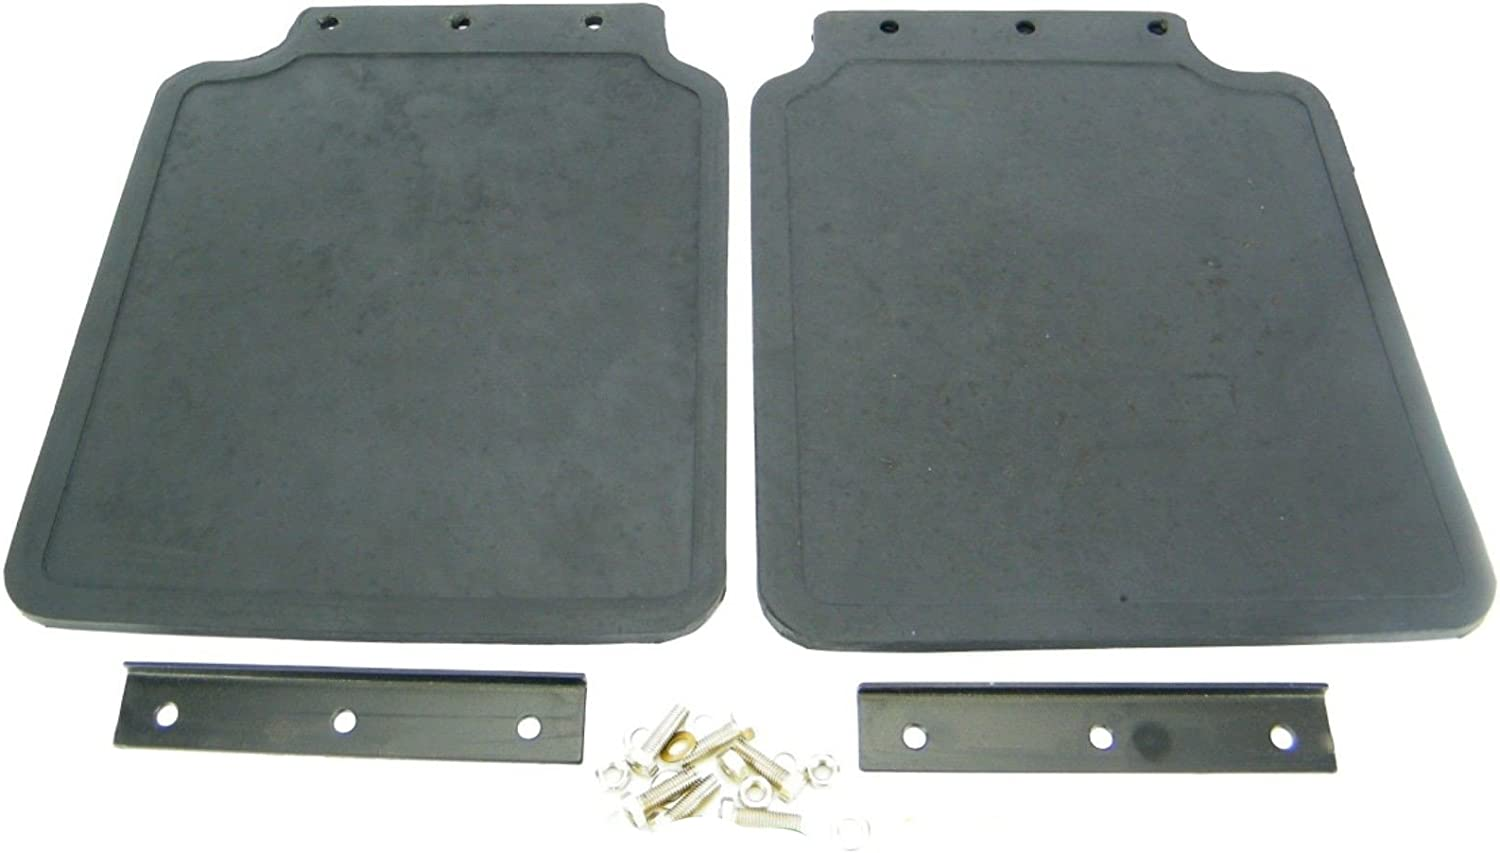 RTC6821 LAND Rover Discovery 1 1989-1998 MUDFLAP PR Plain-parte posteriore